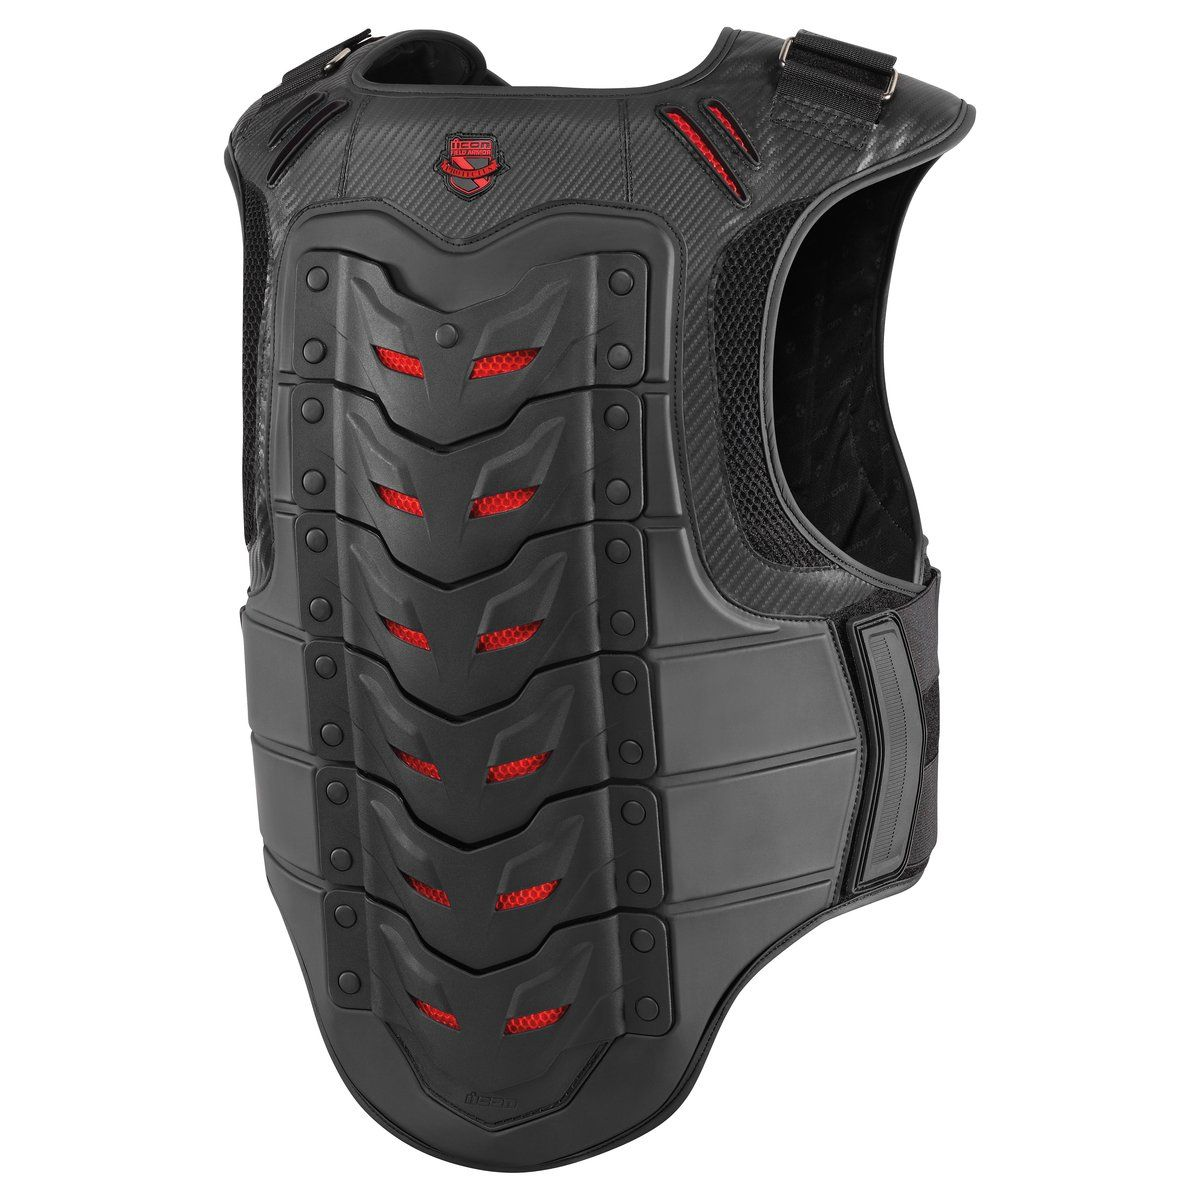 Icon Stryker Vest Riding gear, Bike accessories, Motorcycle